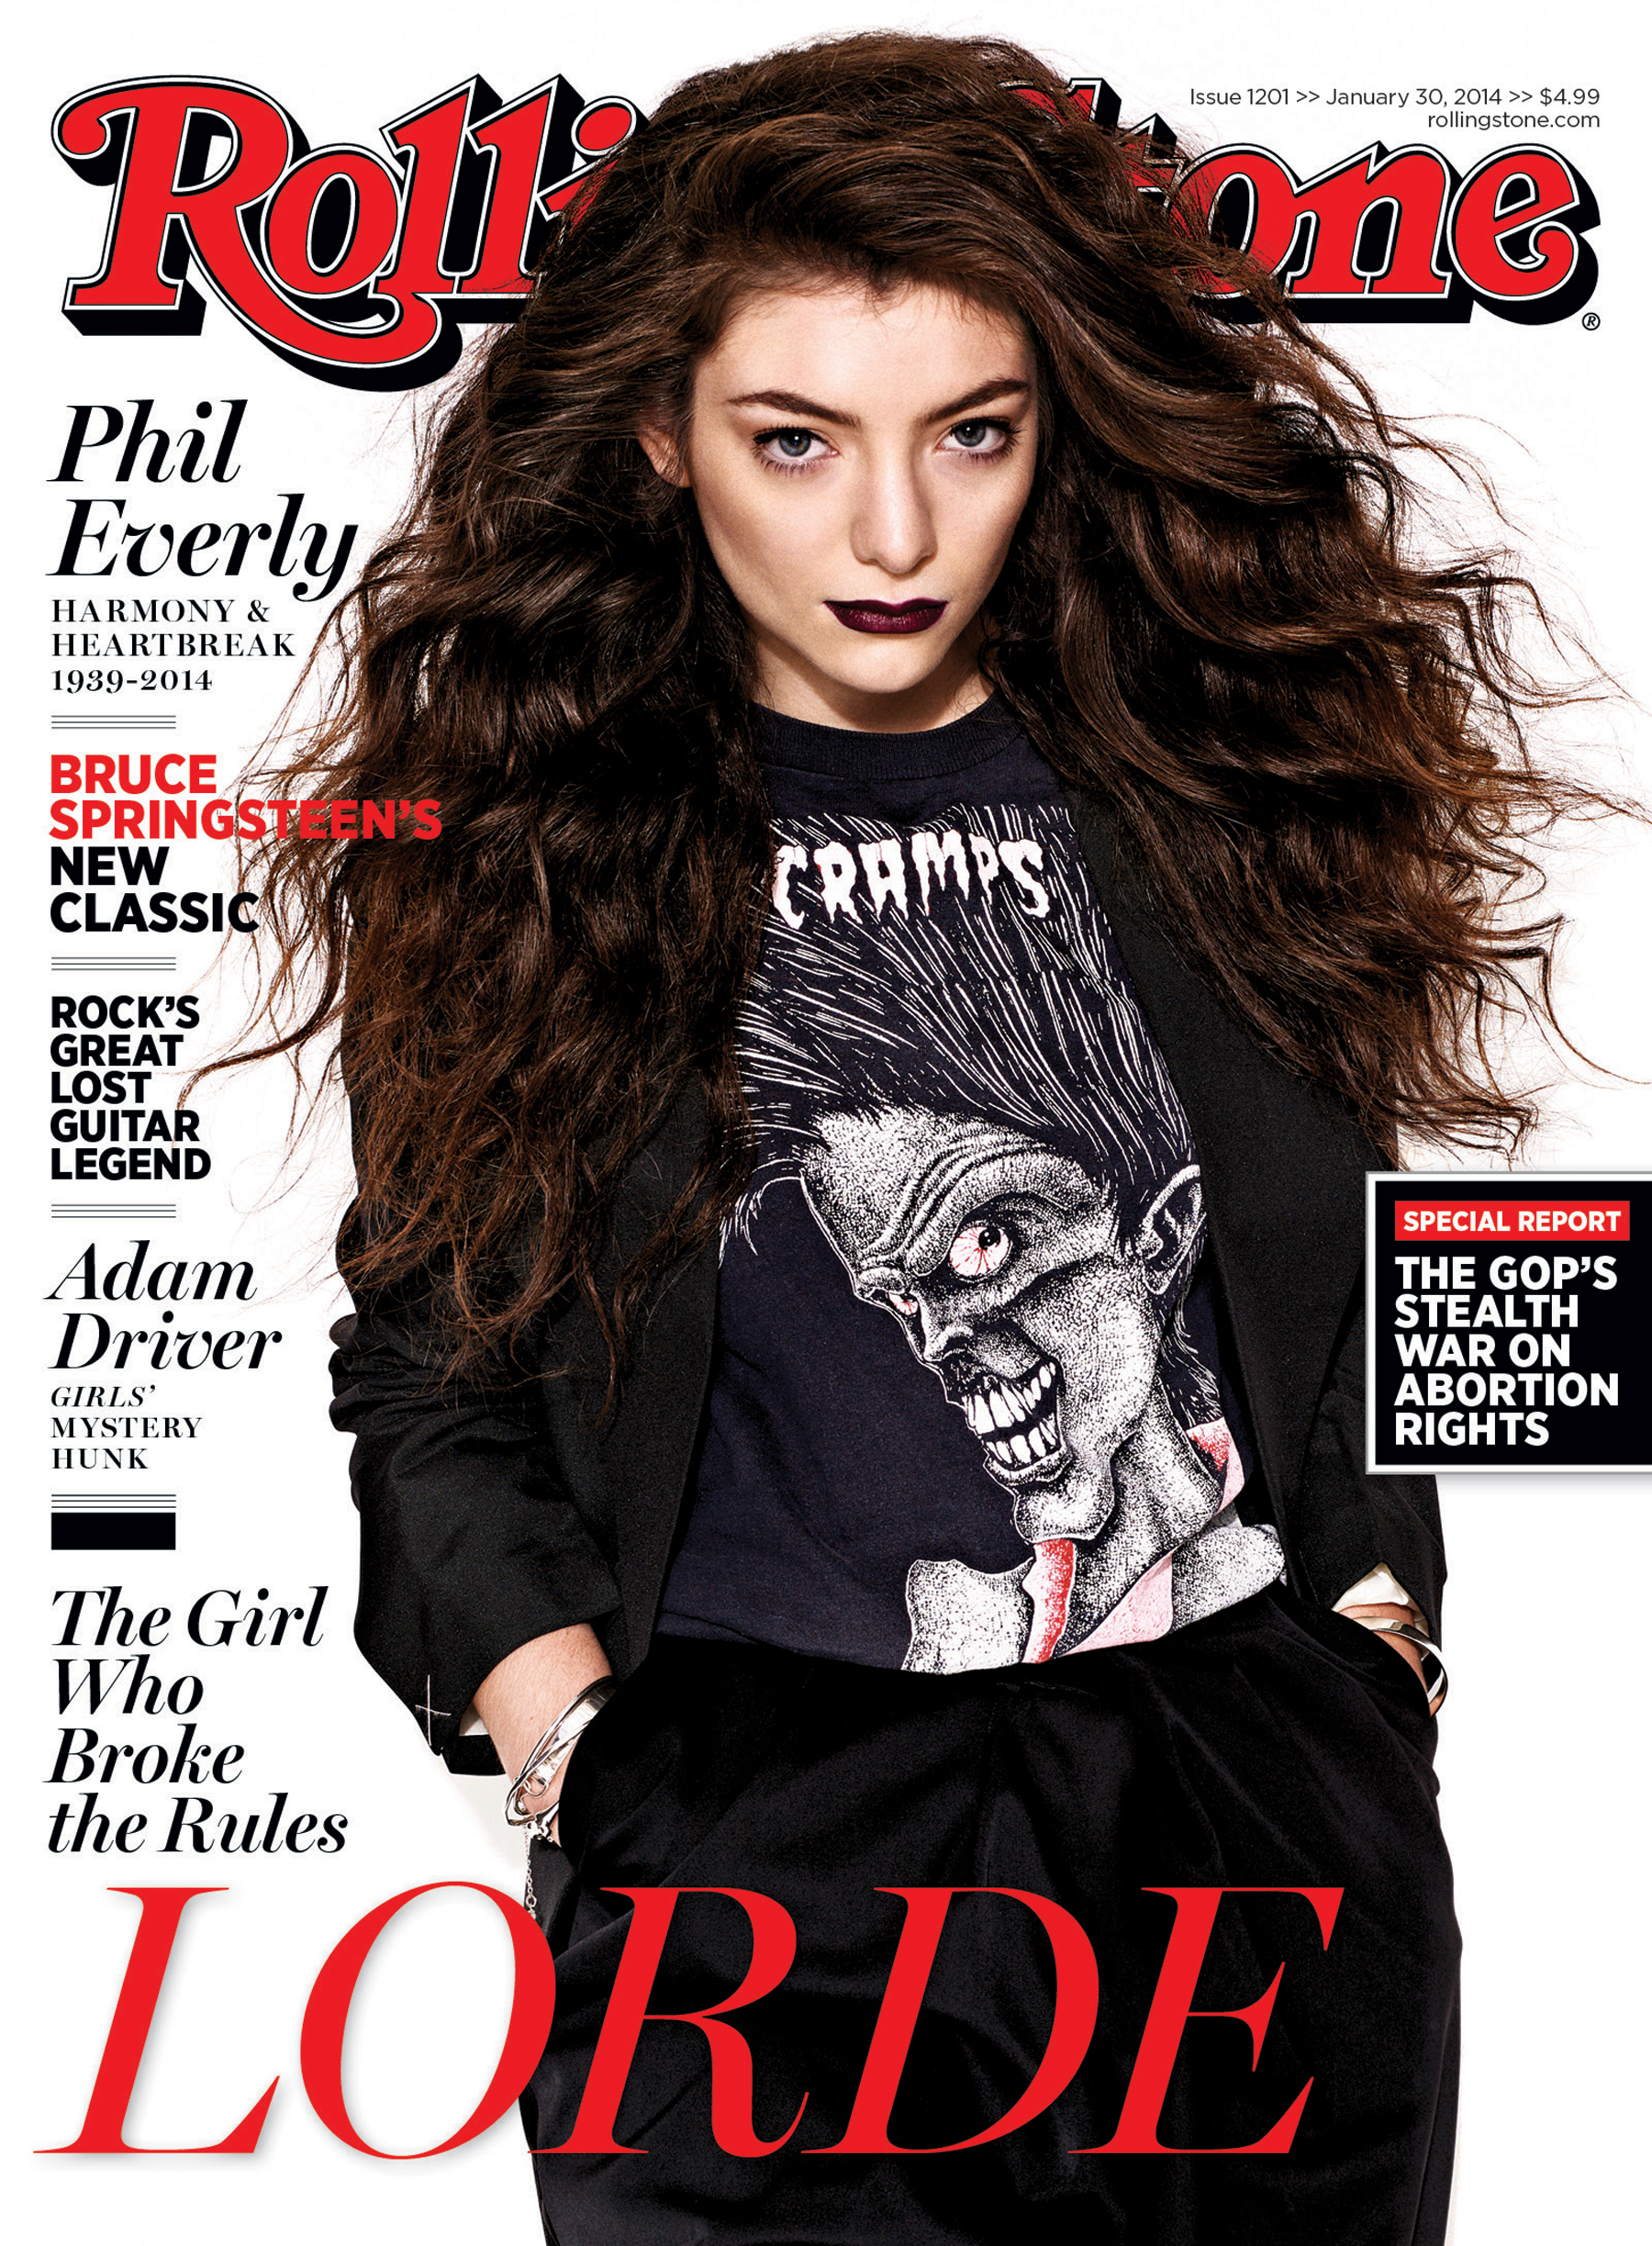 How Lorde Broke All the Rules: Inside Rolling Stone's New Issue